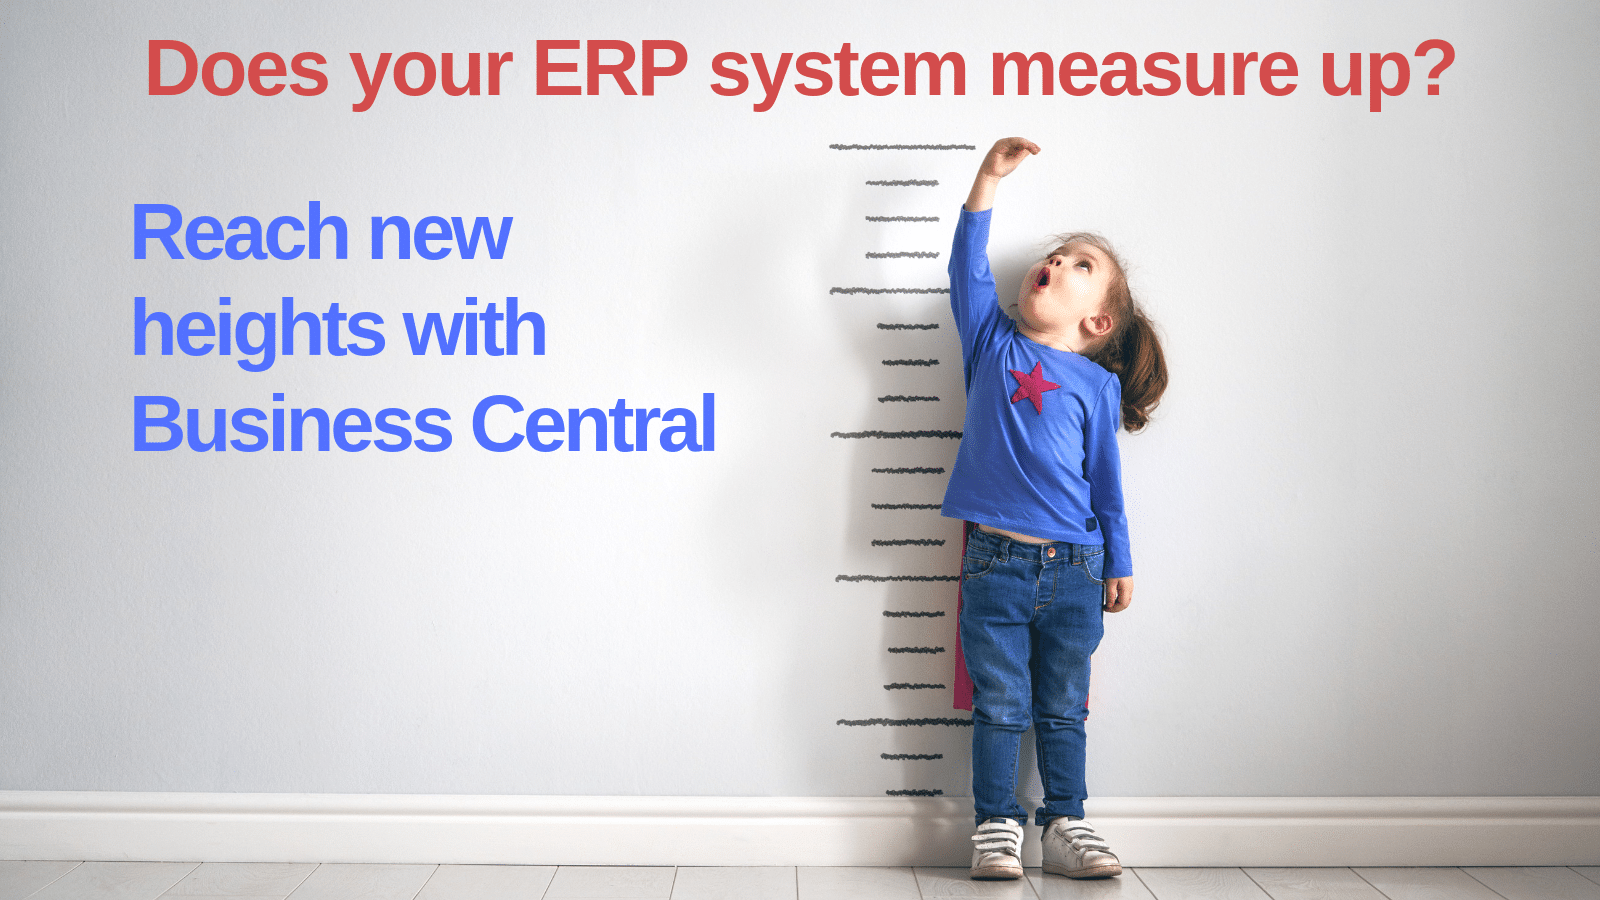 Does your ERP system measure up? Reach new heights with Business Central